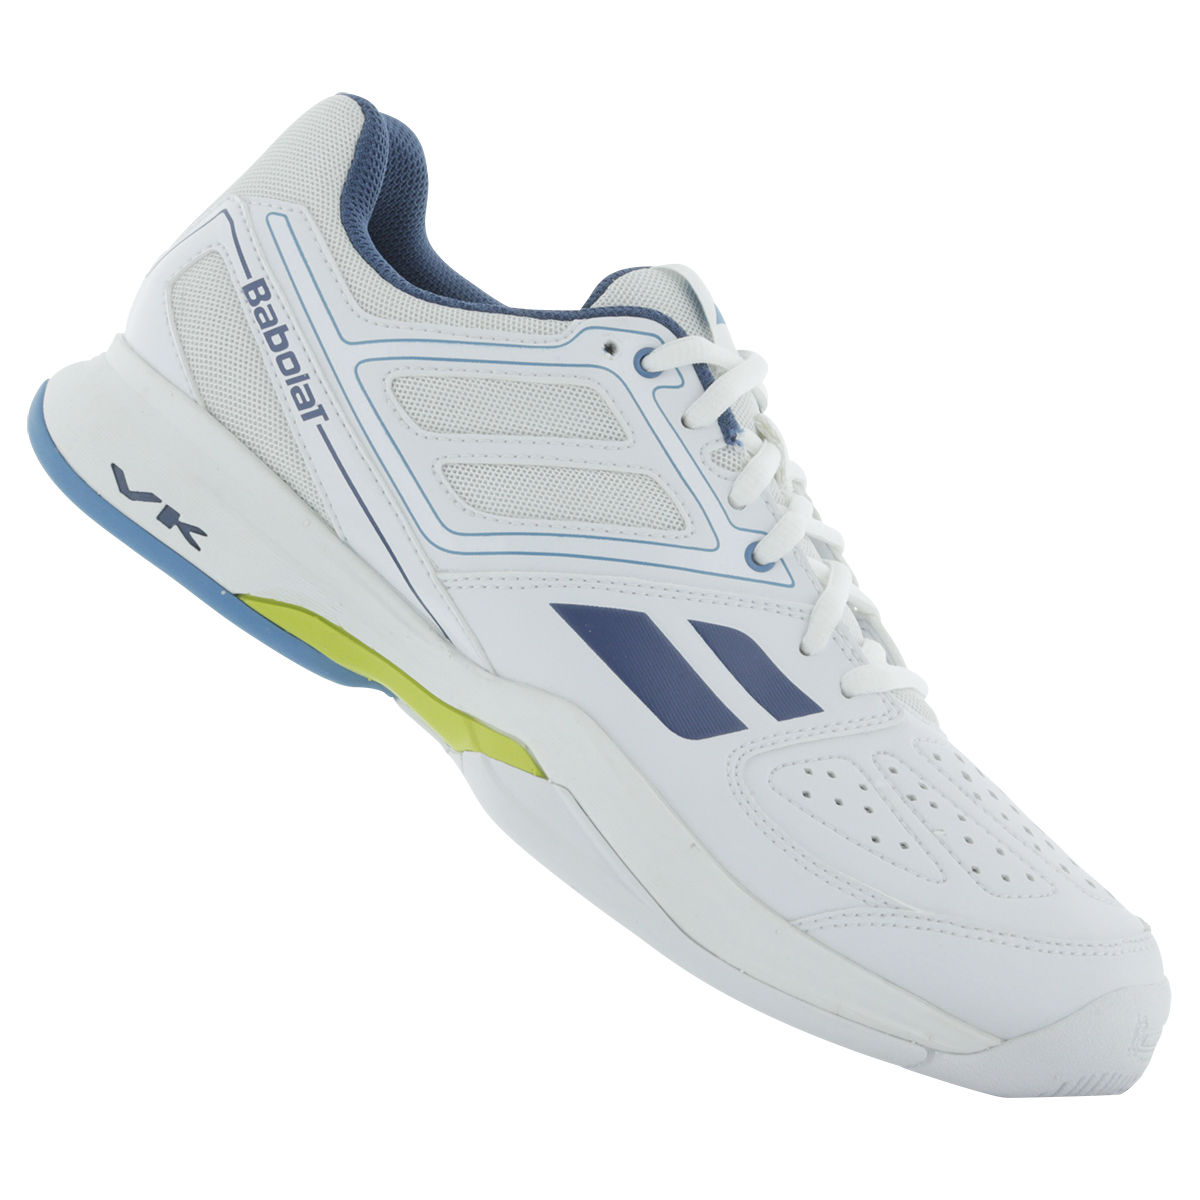 babolat mens pulsion 4 bpm tennis shoes white